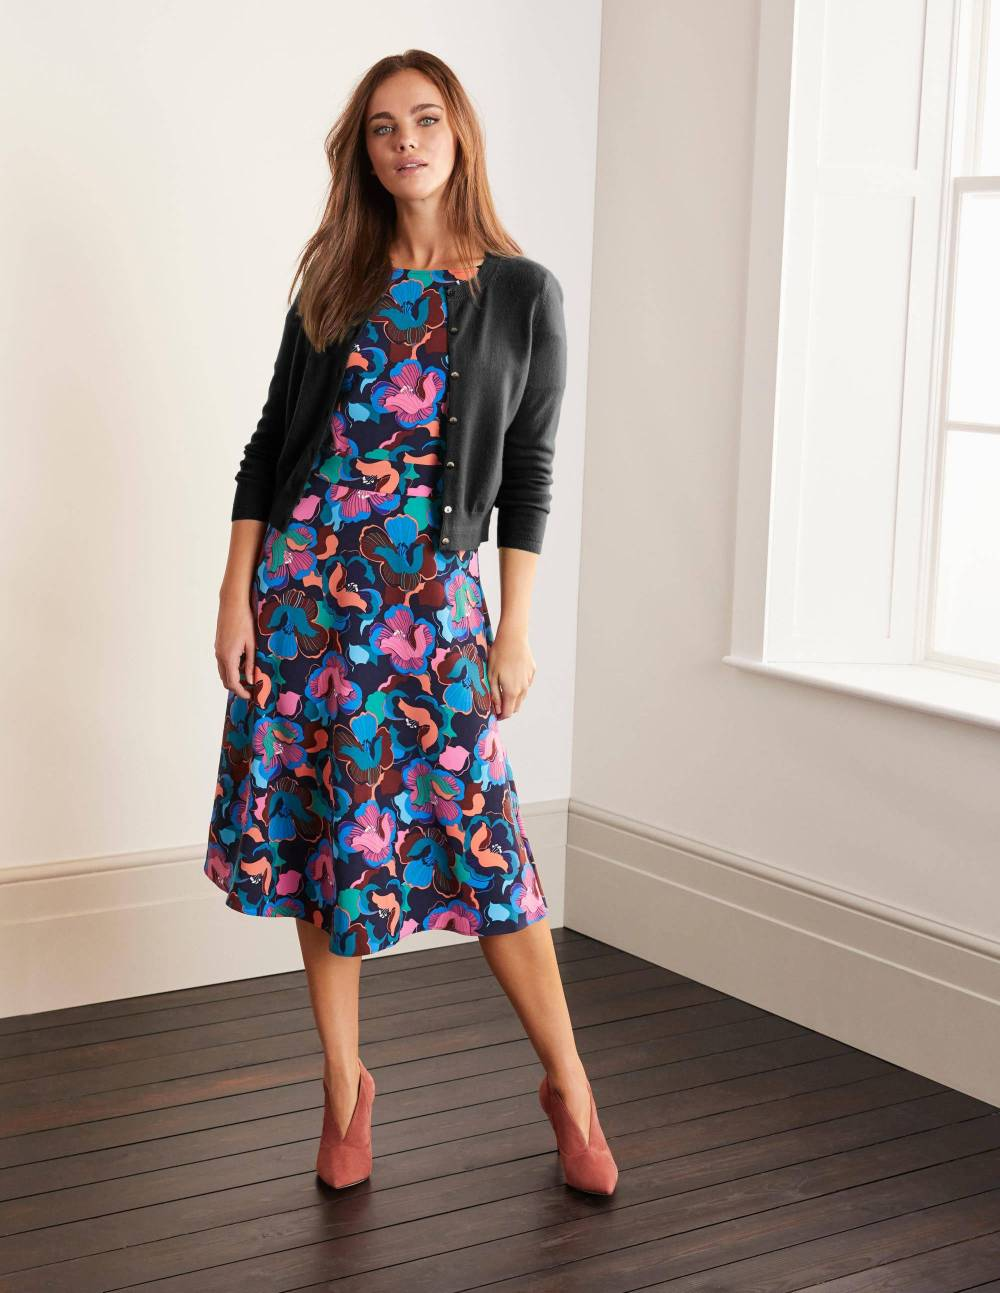 boden affordable stylish edgy clothes